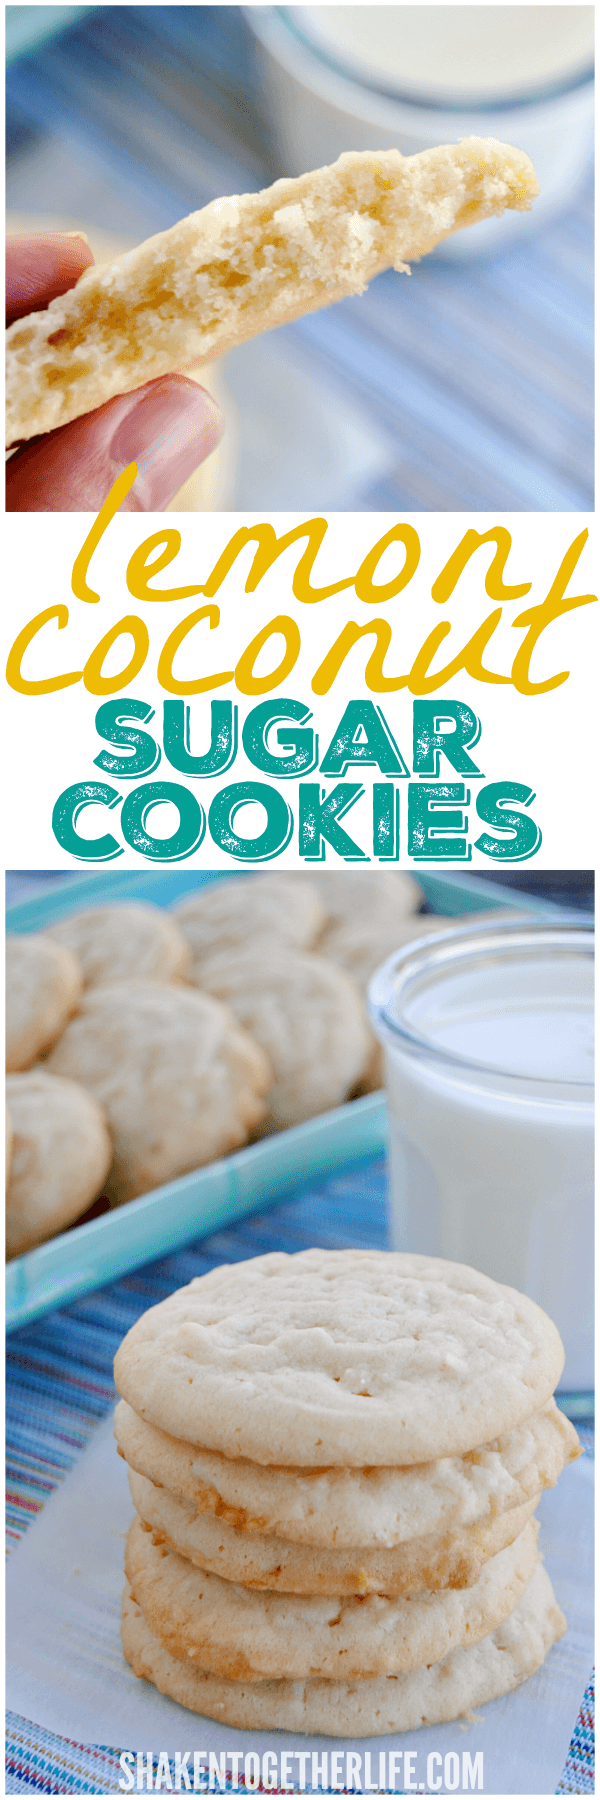 Lemon Coconut Sugar Cookies - one bowl, no rolling dough ... just stir, scoop and bake!